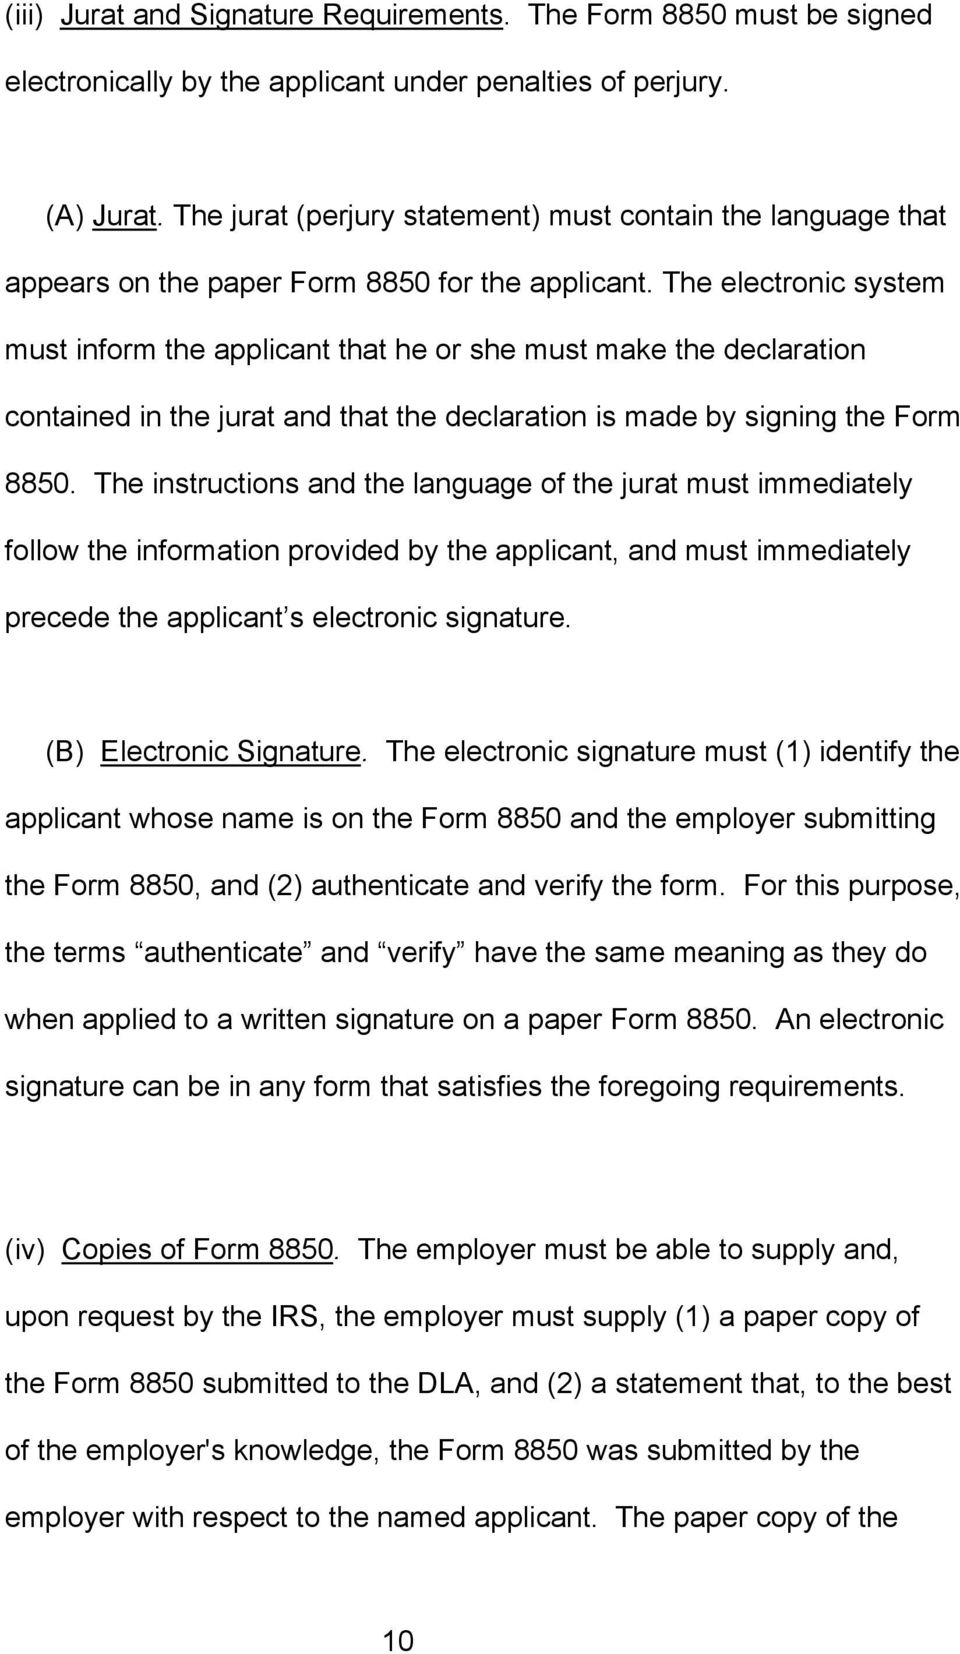 The electronic system must inform the applicant that he or she must make the declaration contained in the jurat and that the declaration is made by signing the Form 8850.